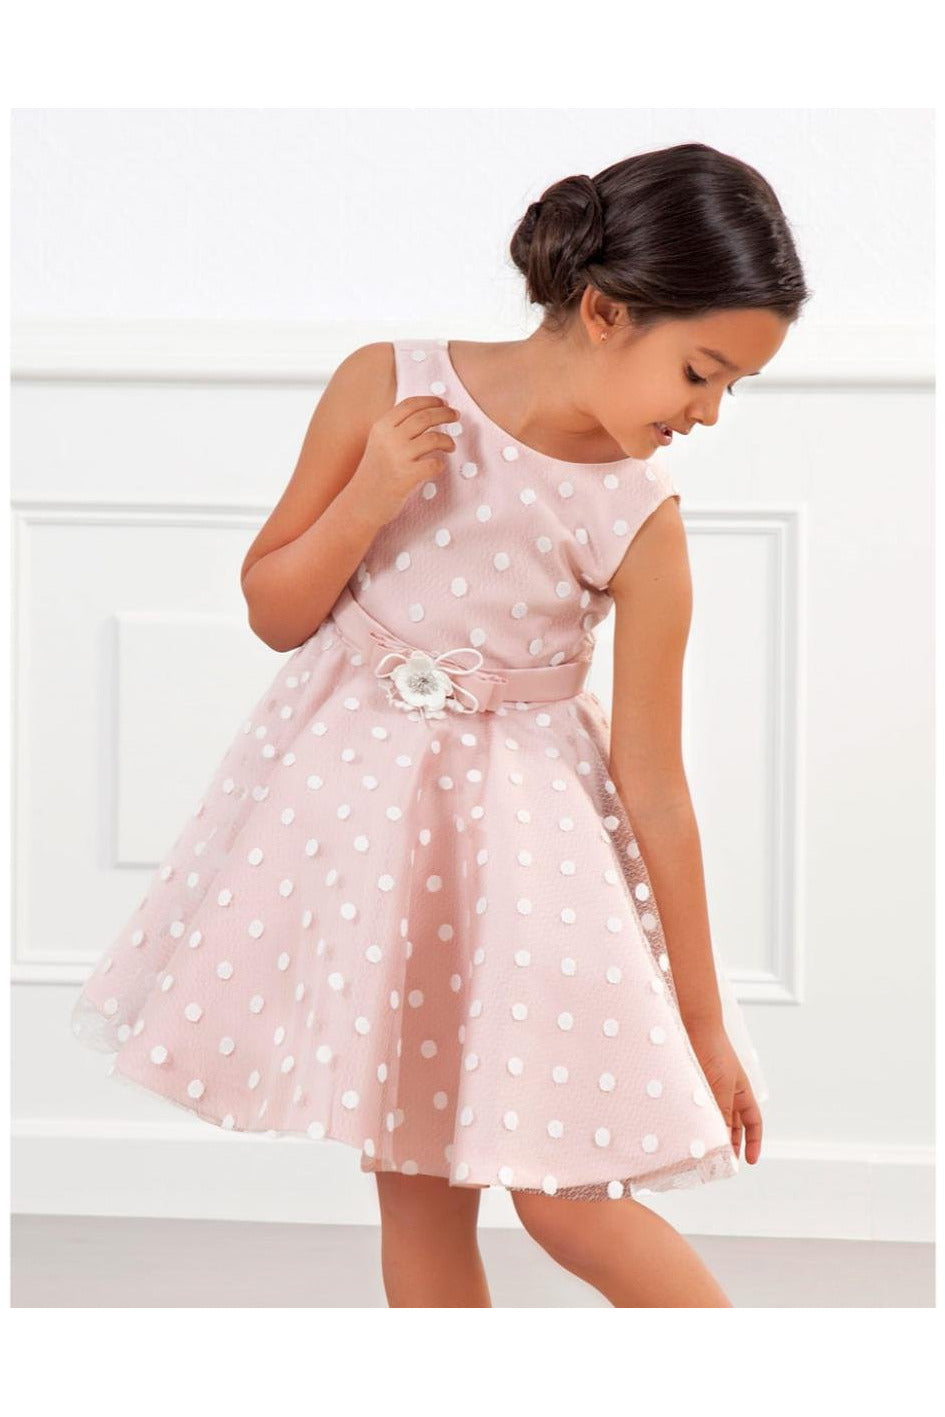 Abel and Lula Pale Rose Polka Dot Dress